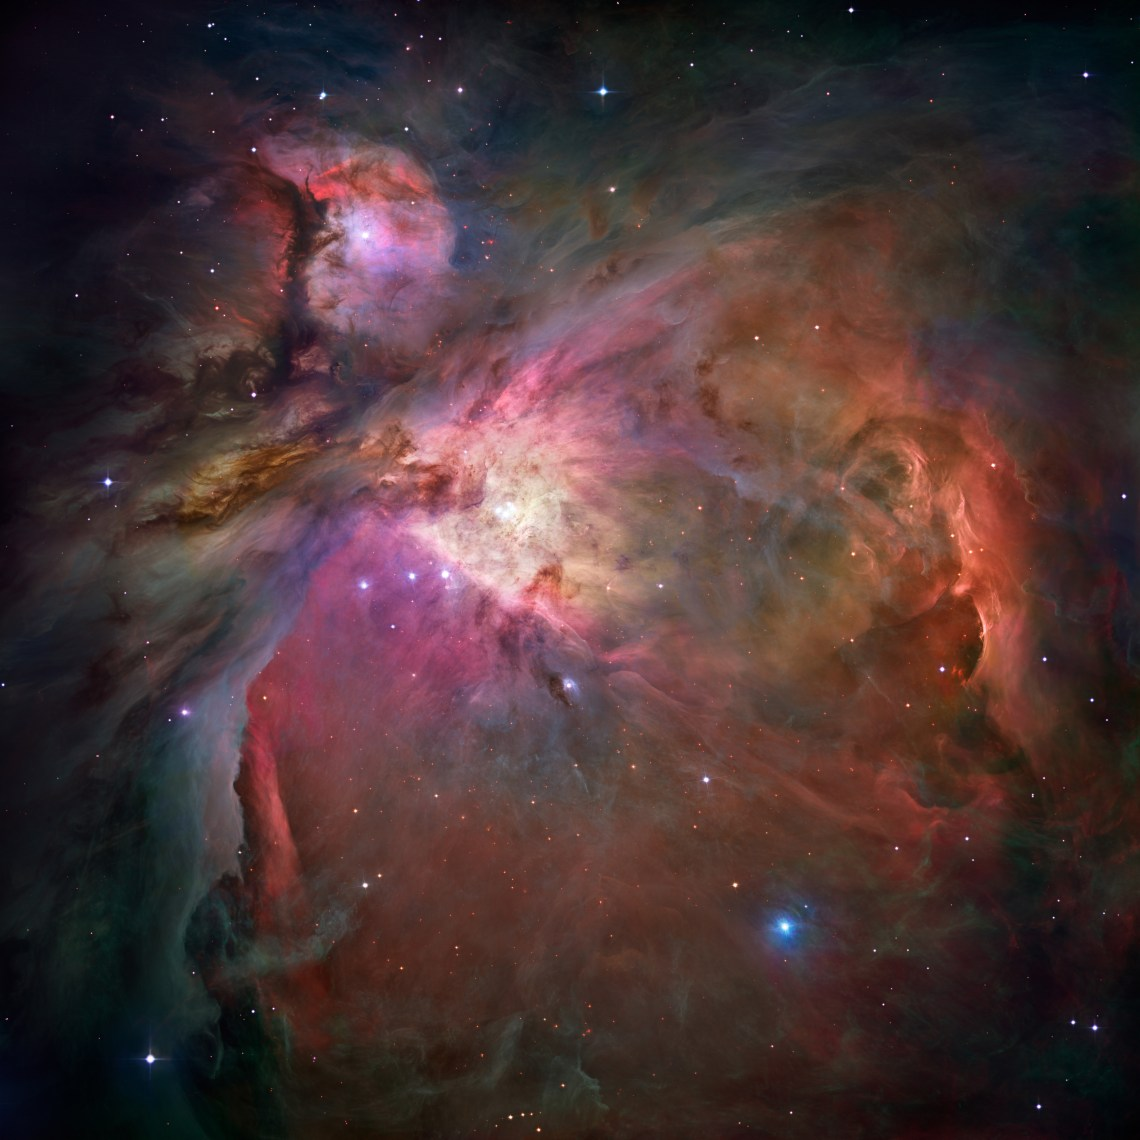 HUBBLE'S TOP 100 • #12 • Credit: NASA, ESA, M. Robberto (Space Telescope Science Institute/ESA) and the Hubble Space Telescope Orion Treasury Project Team